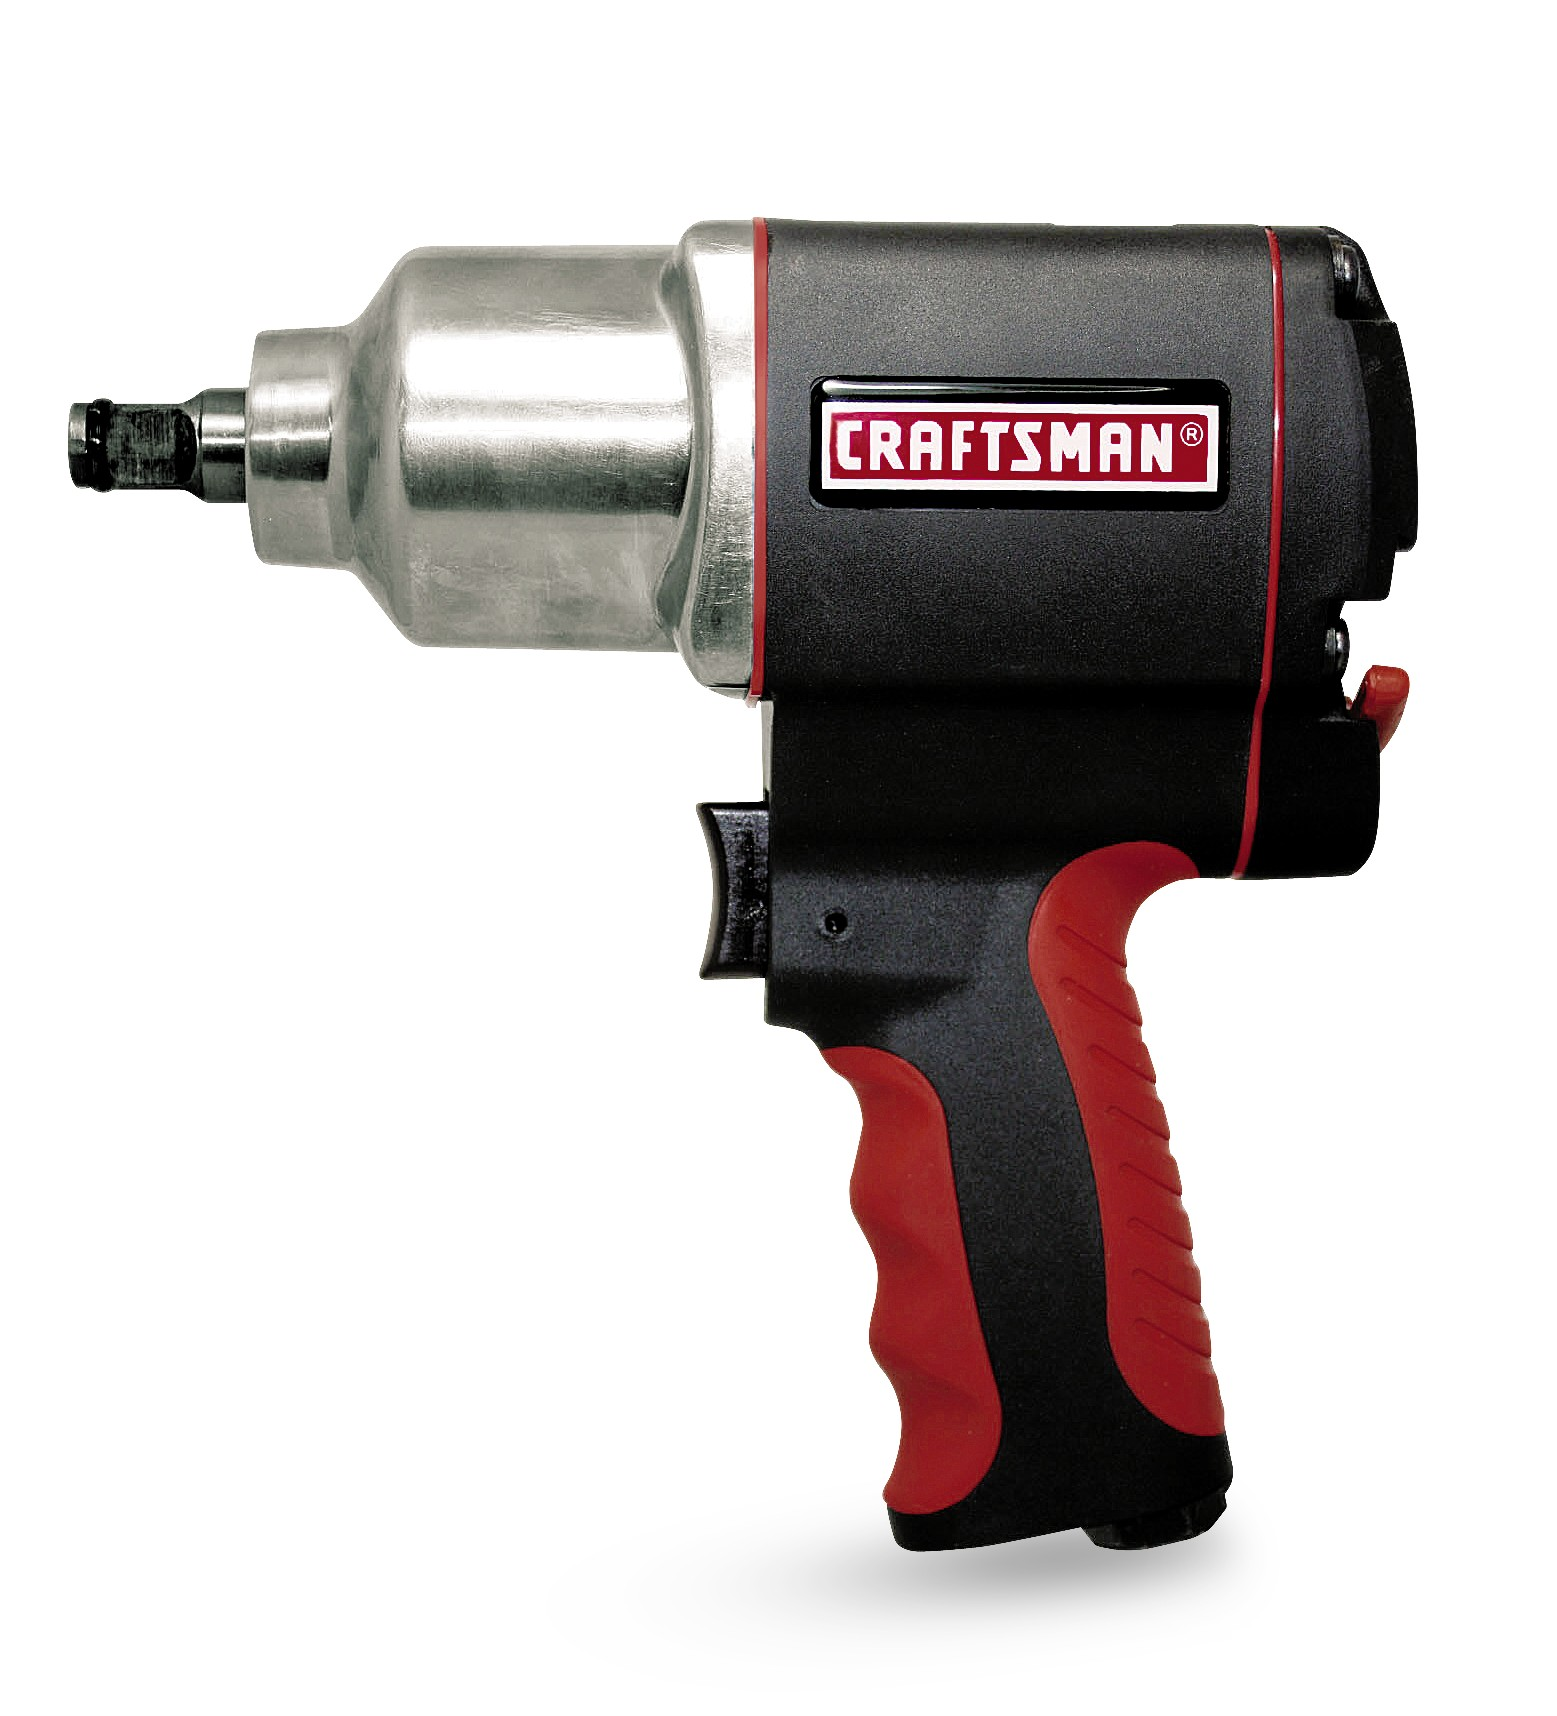 Craftsman 26 Gallon Air Compressor with BONUS Impact Wrench and Ratchet